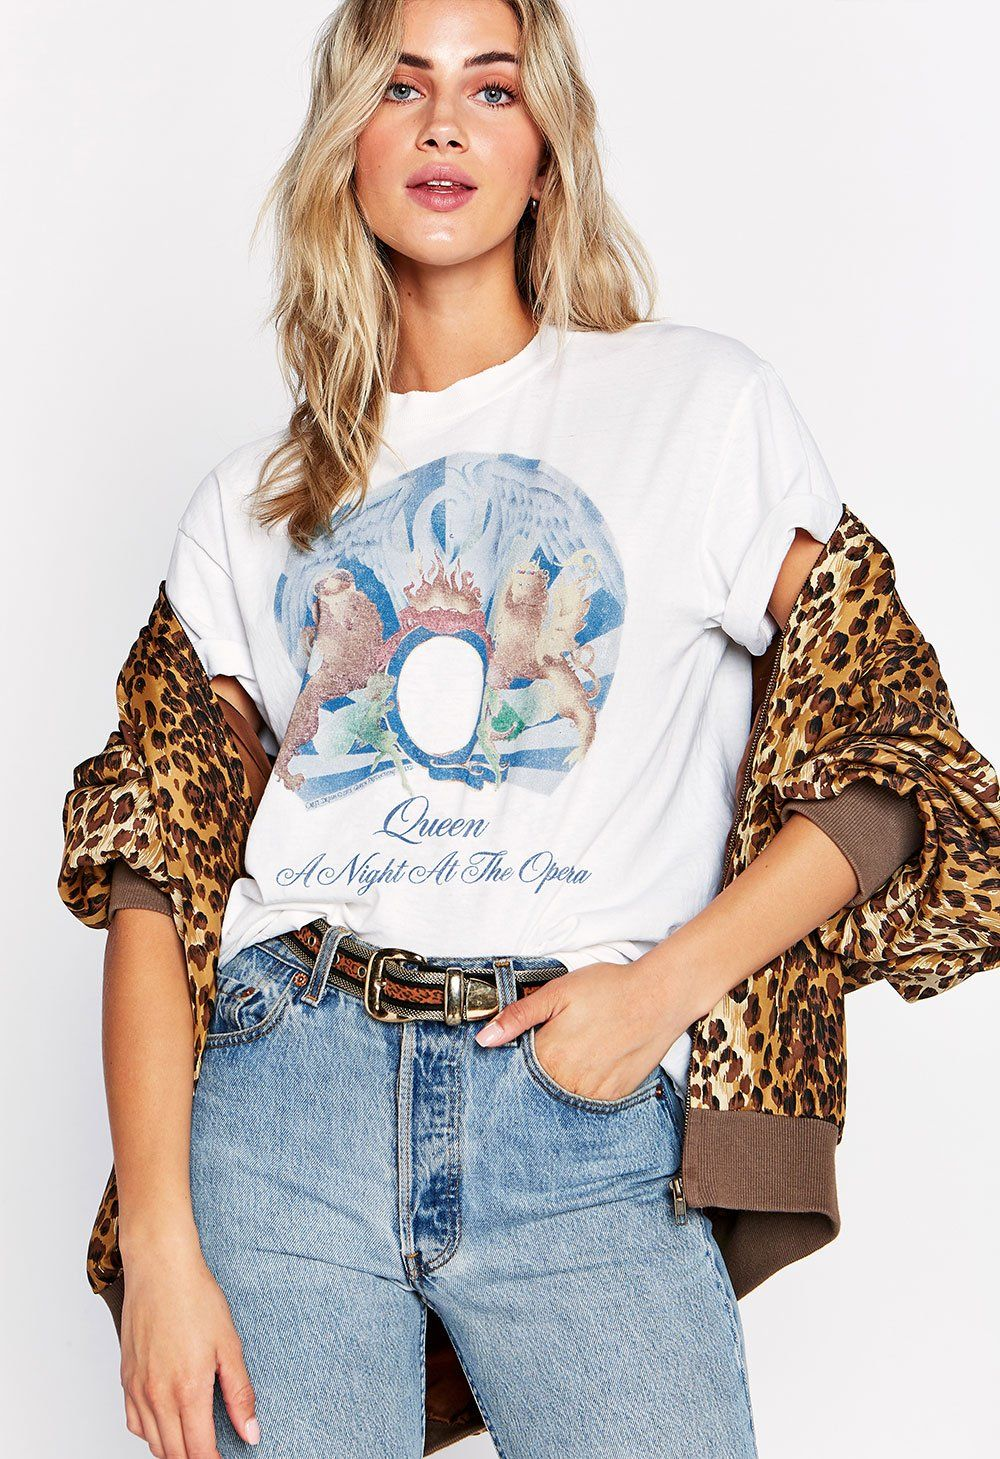 Queen A Night at the Opera Oversized Tee in 2019